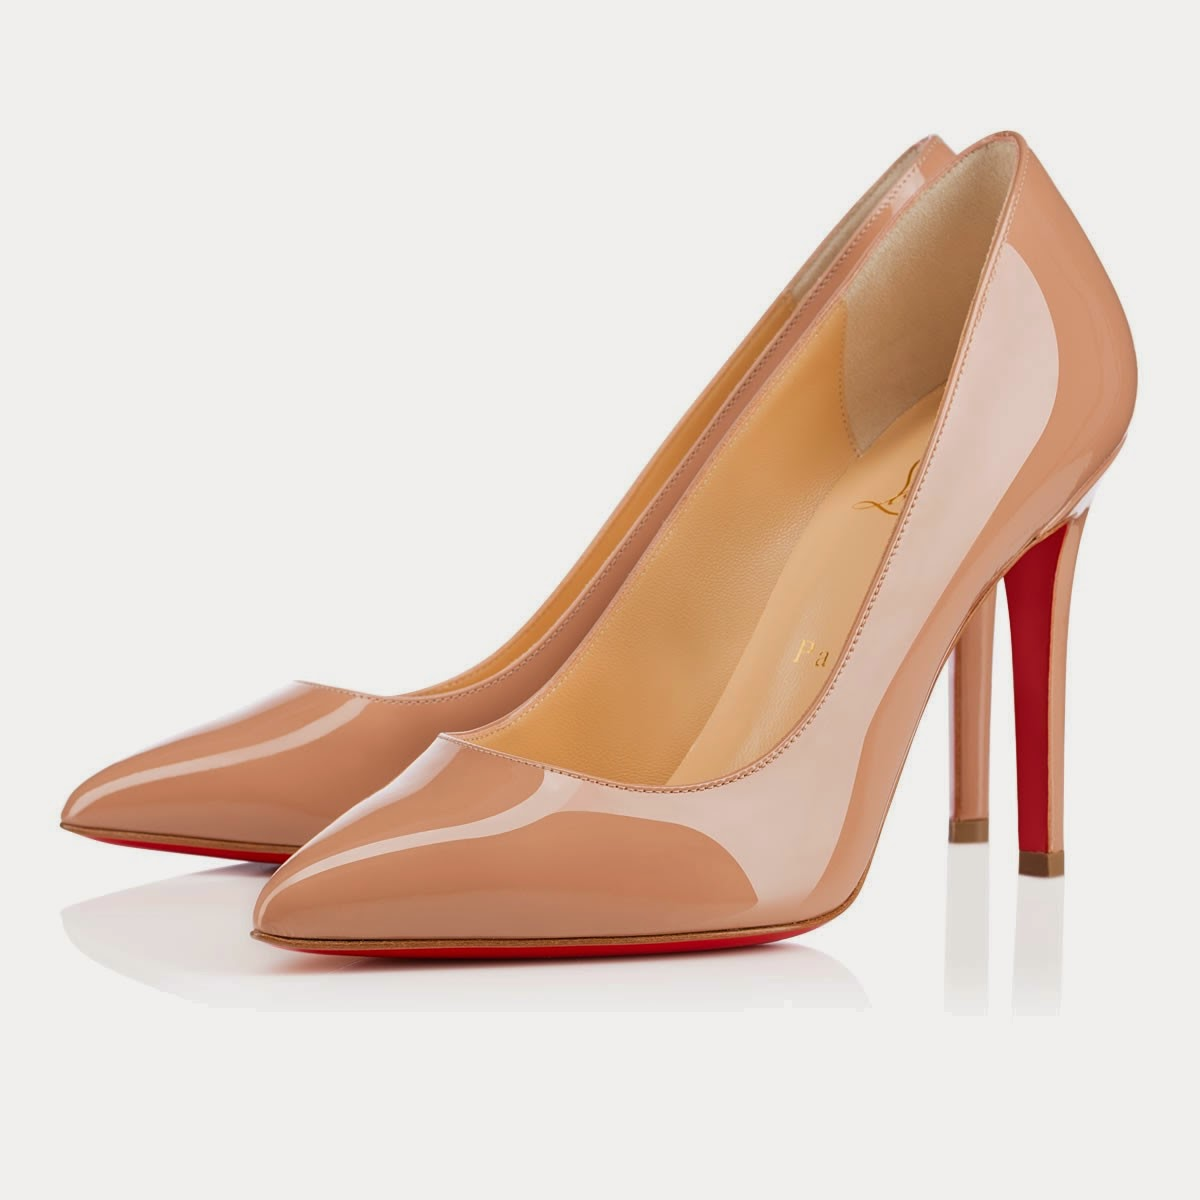 Louboutin Shoes In Montreal 2014